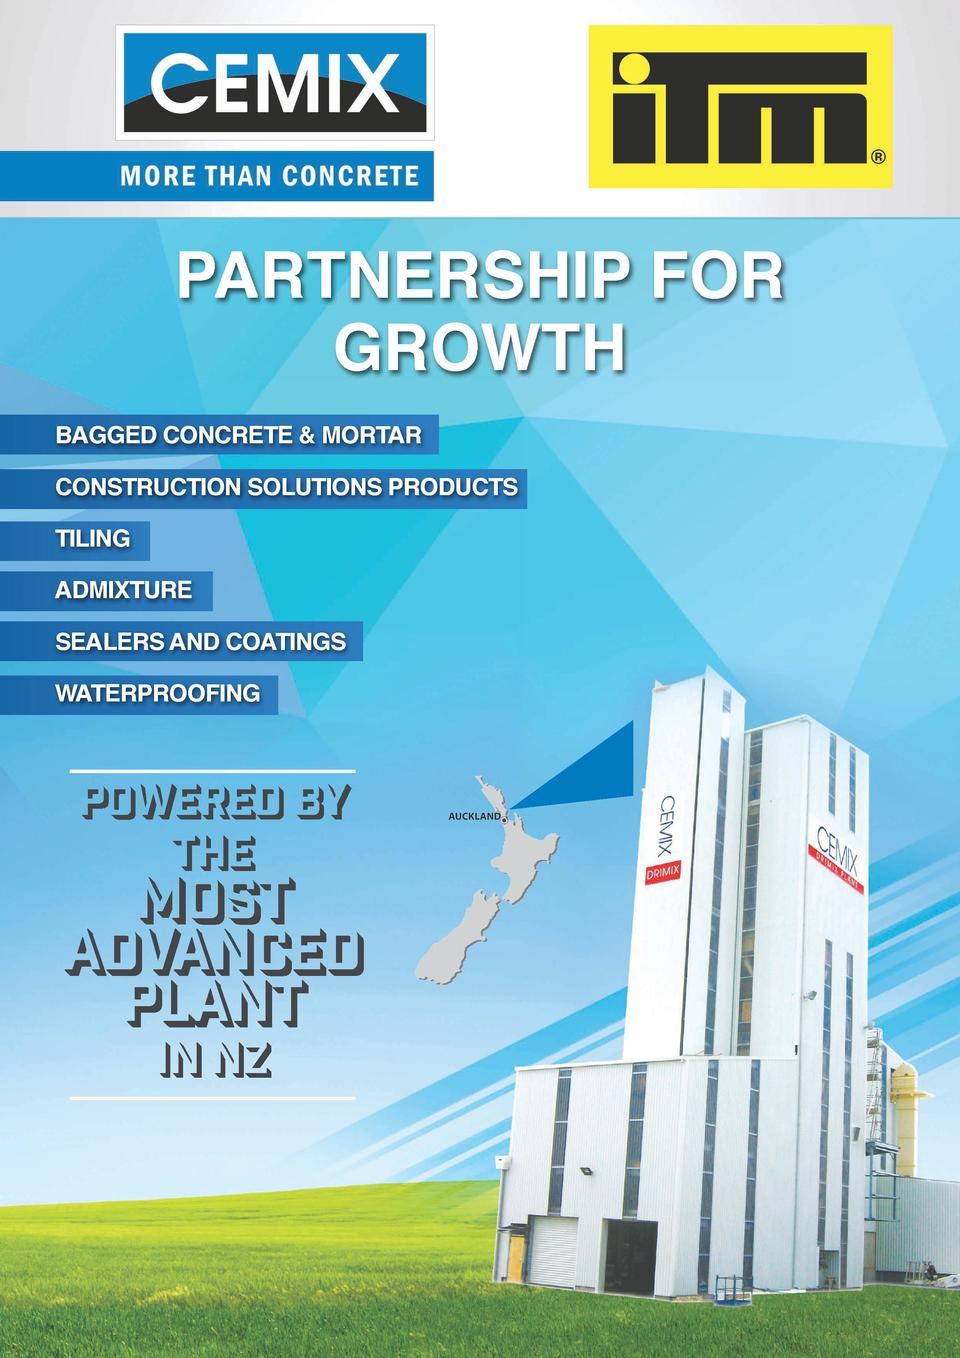 PARTNERSHIP FOR GROWTH BAGGED CONCRETE   MORTAR CONSTRUCTION SOLUTIONS PRODUCTS TILING ADMIXTURE SEALERS AND COATINGS WATE...